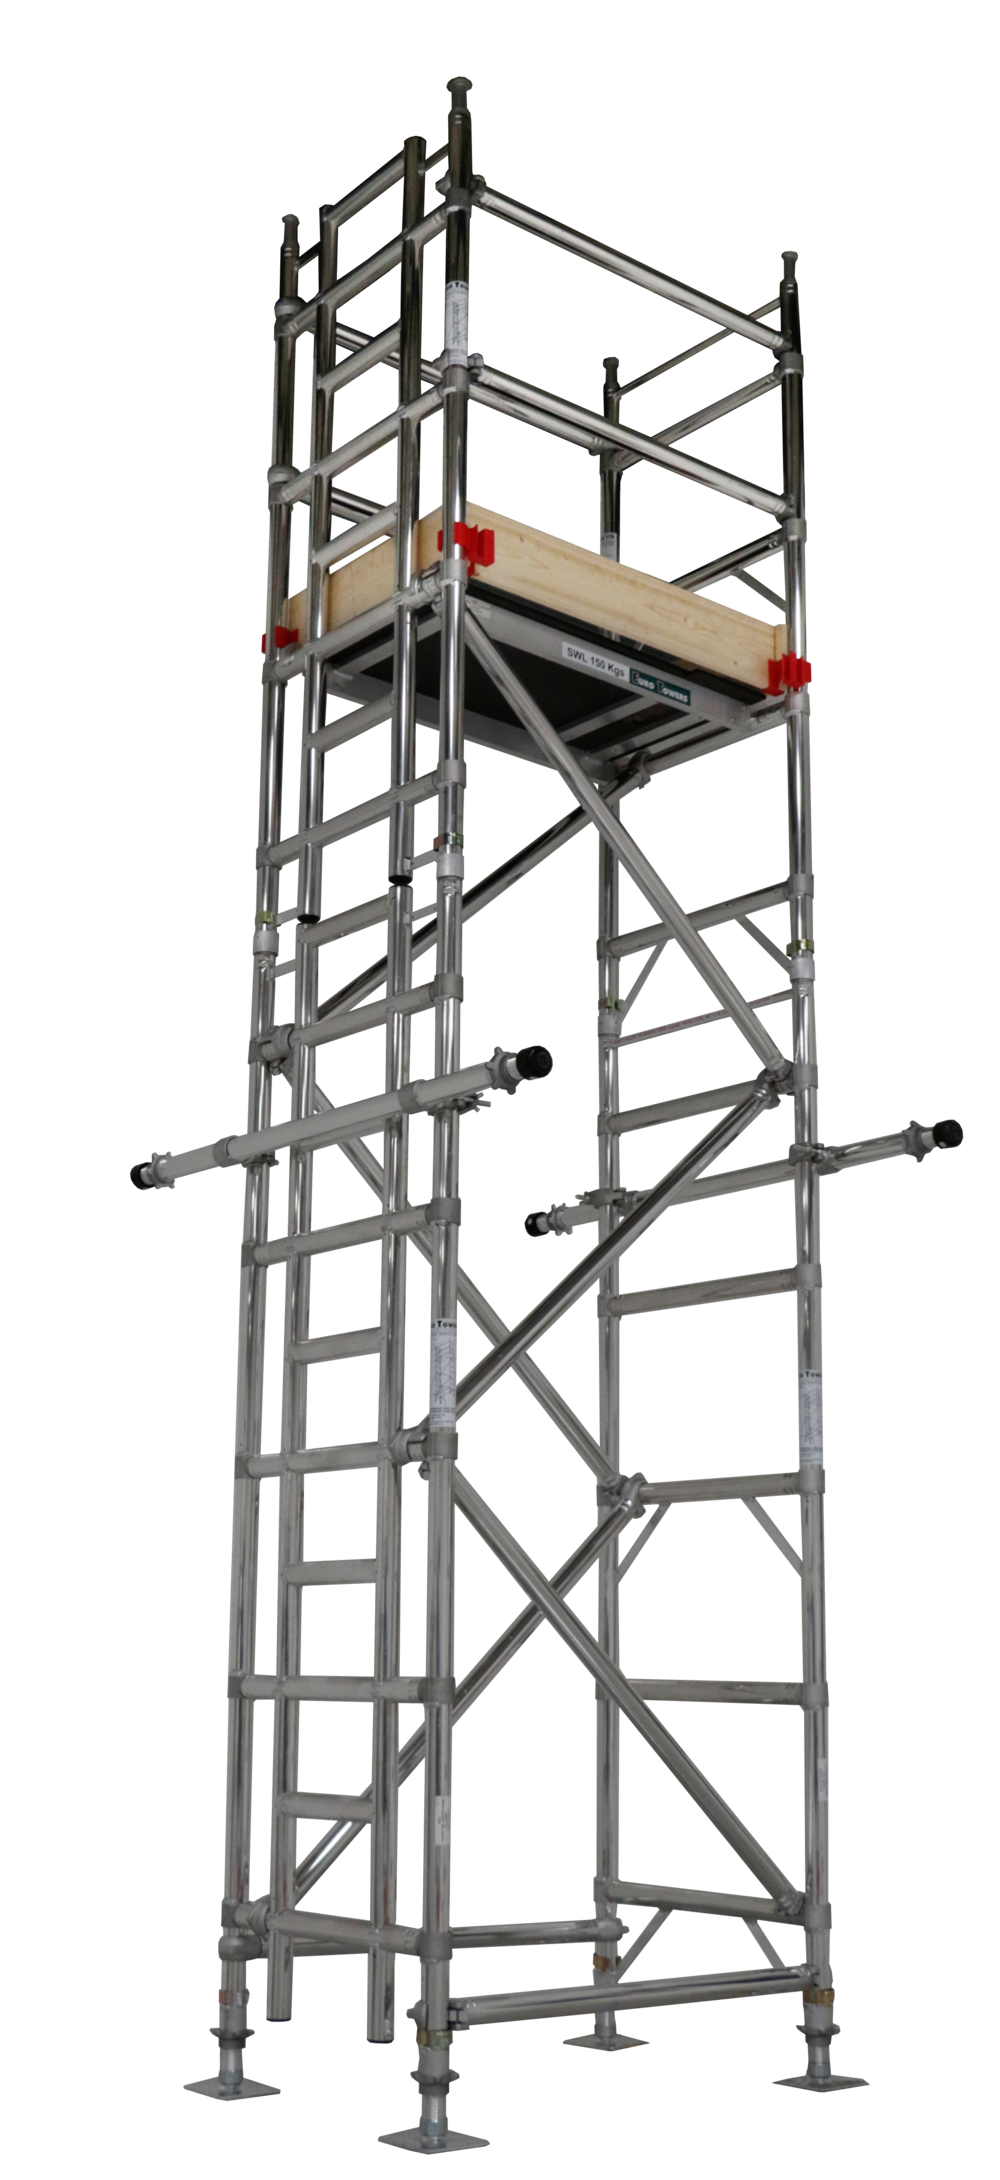 Lift shaft tower, euro towers, working at height, aluminium access, confined space